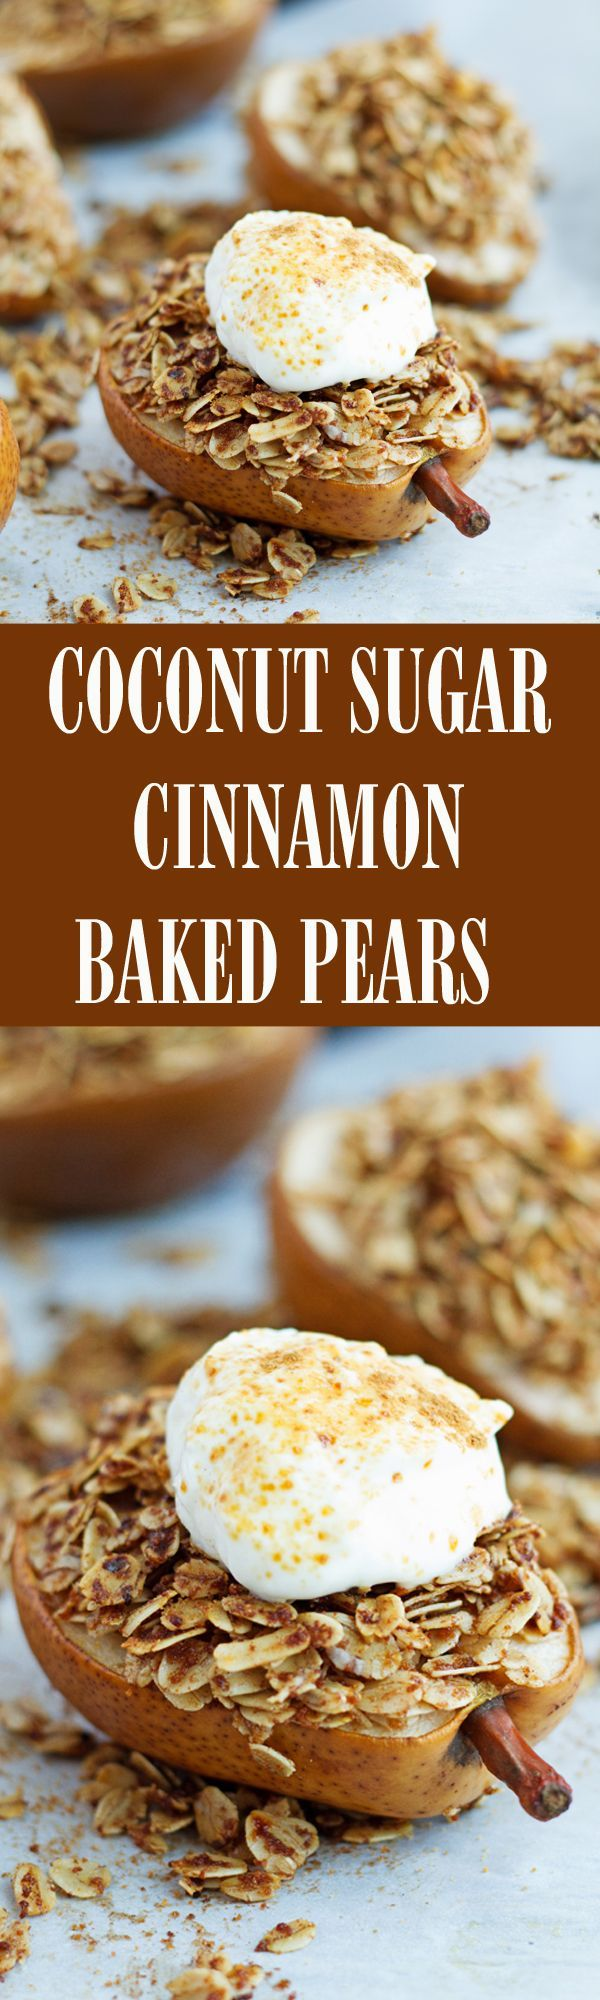 Healthy cinnamon crunch baked pears dessert with coconut sugar and oats.I @ilonaspassion